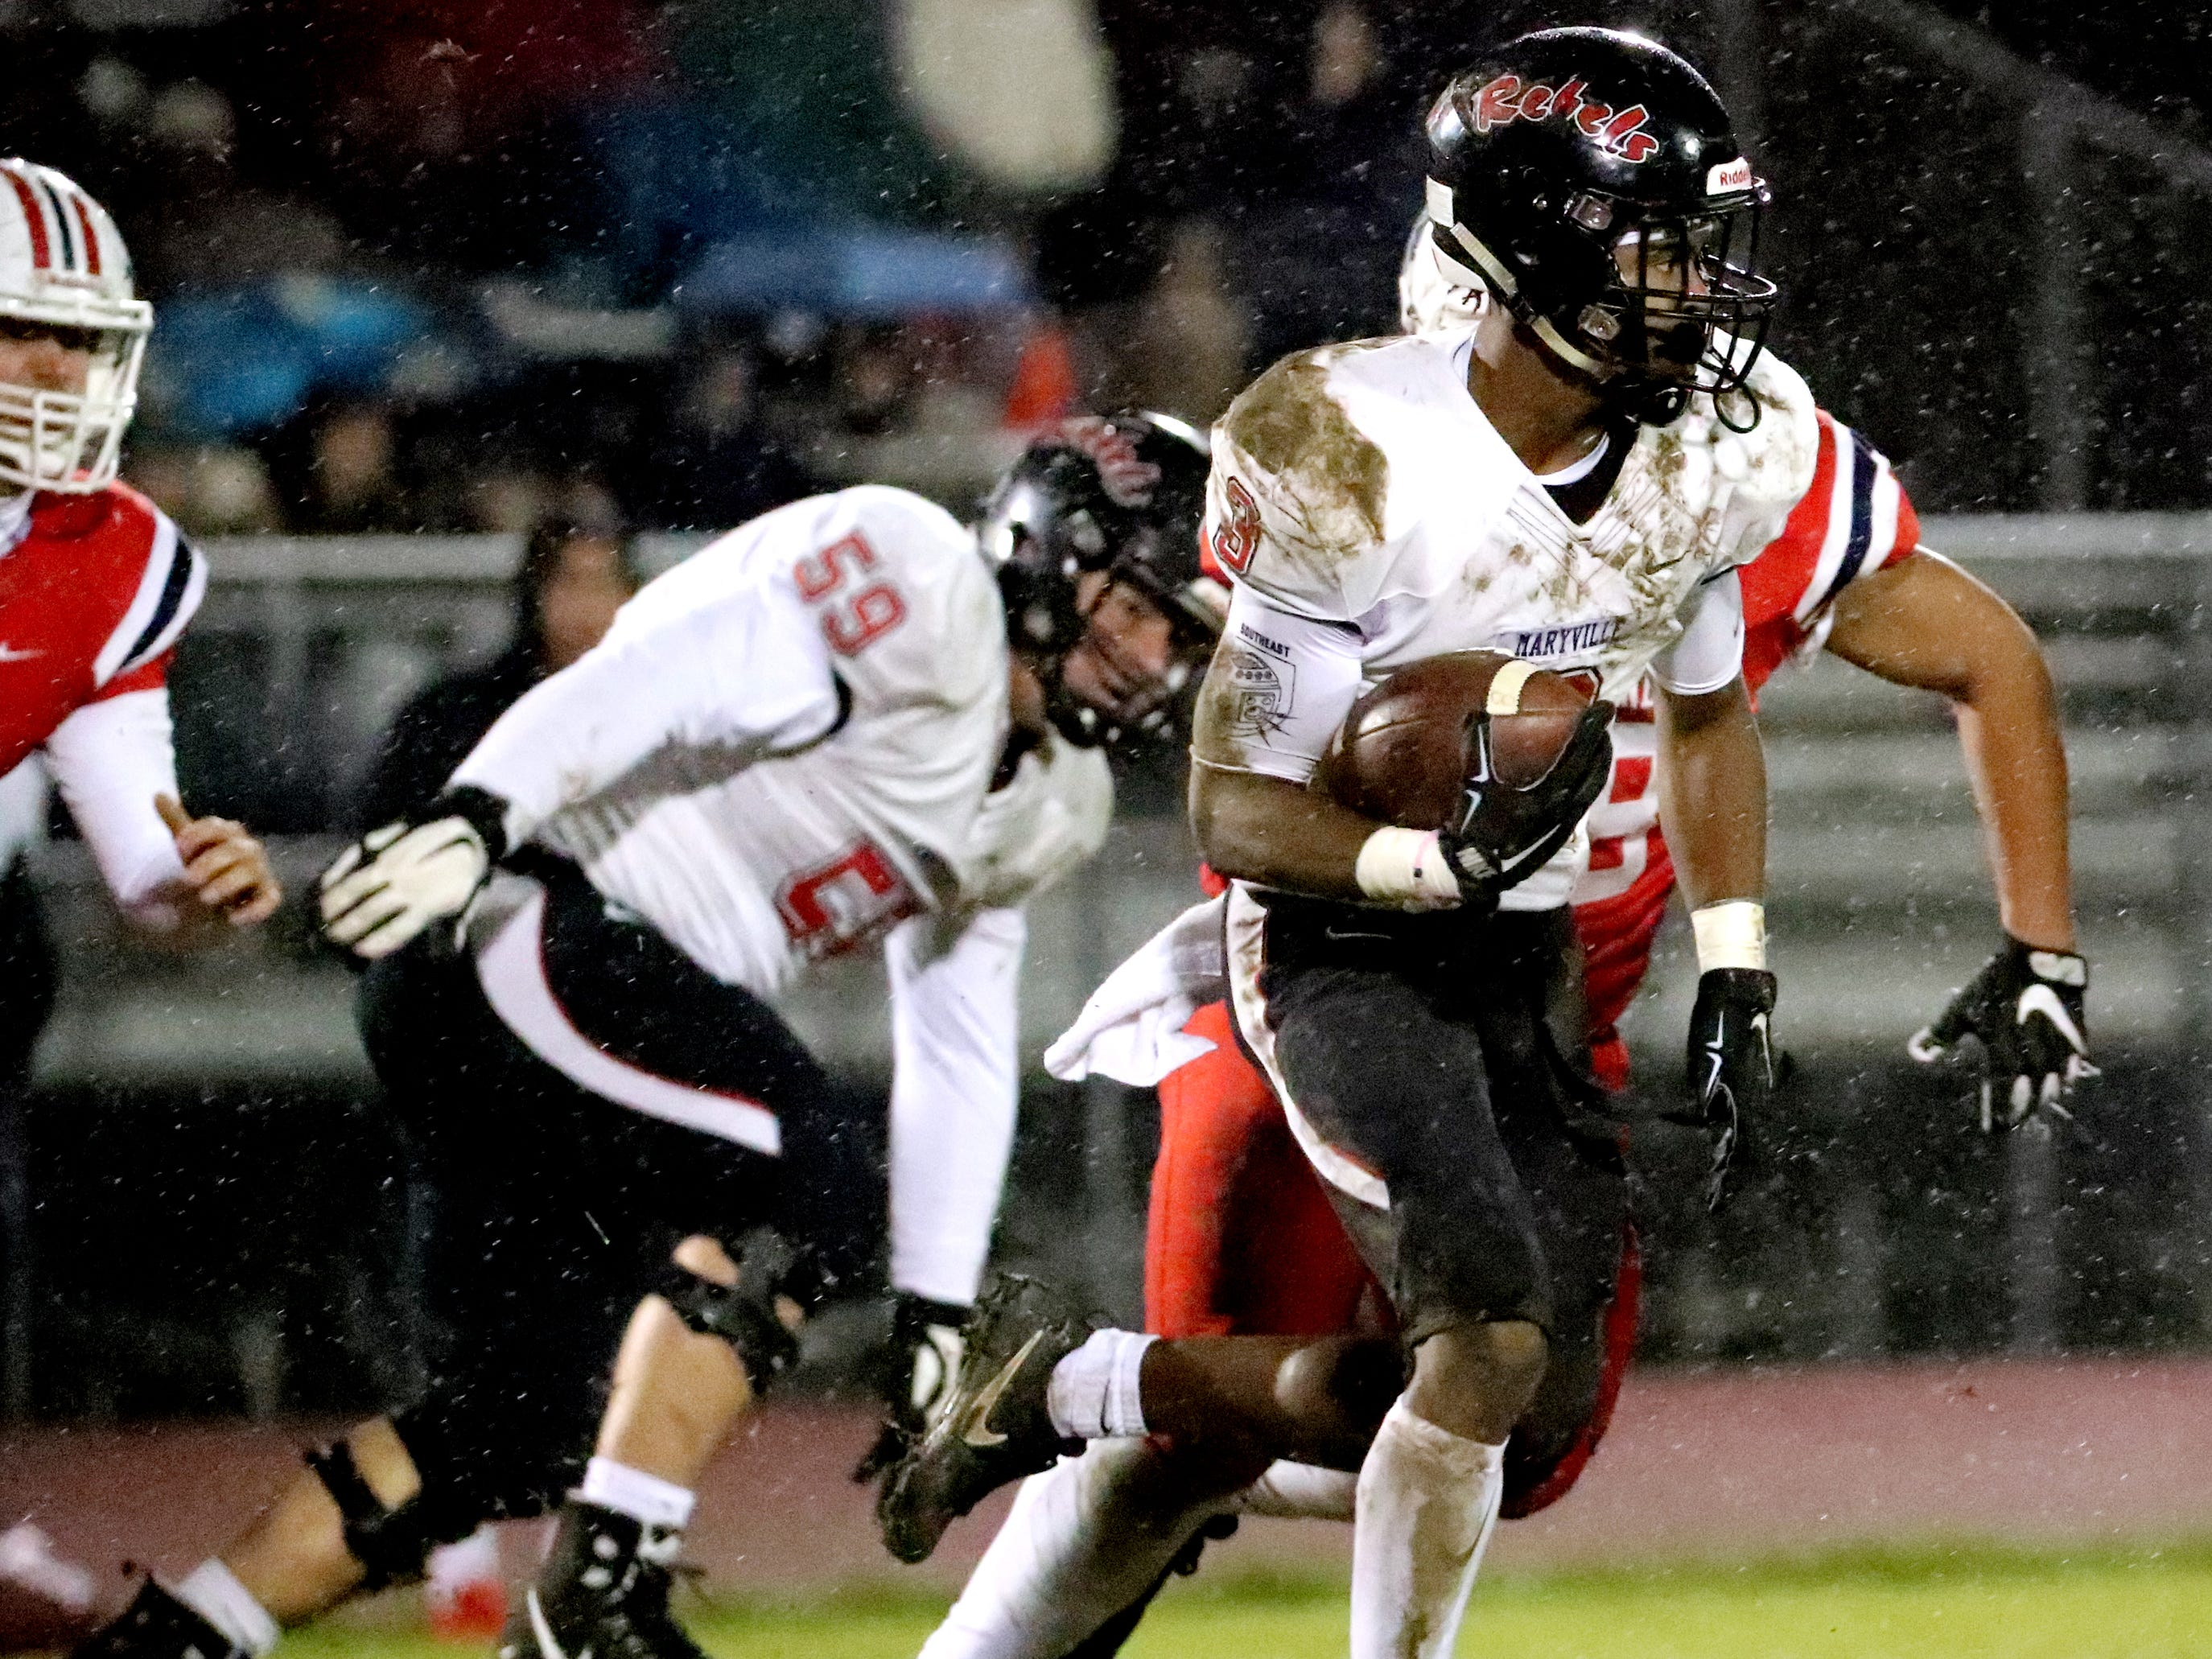 Maryville's AJ Davis (3) runs the ball against Oakland at Oakland in Murfreesboro, on Friday, Aug. 23 2018, during the 6A playoffs.